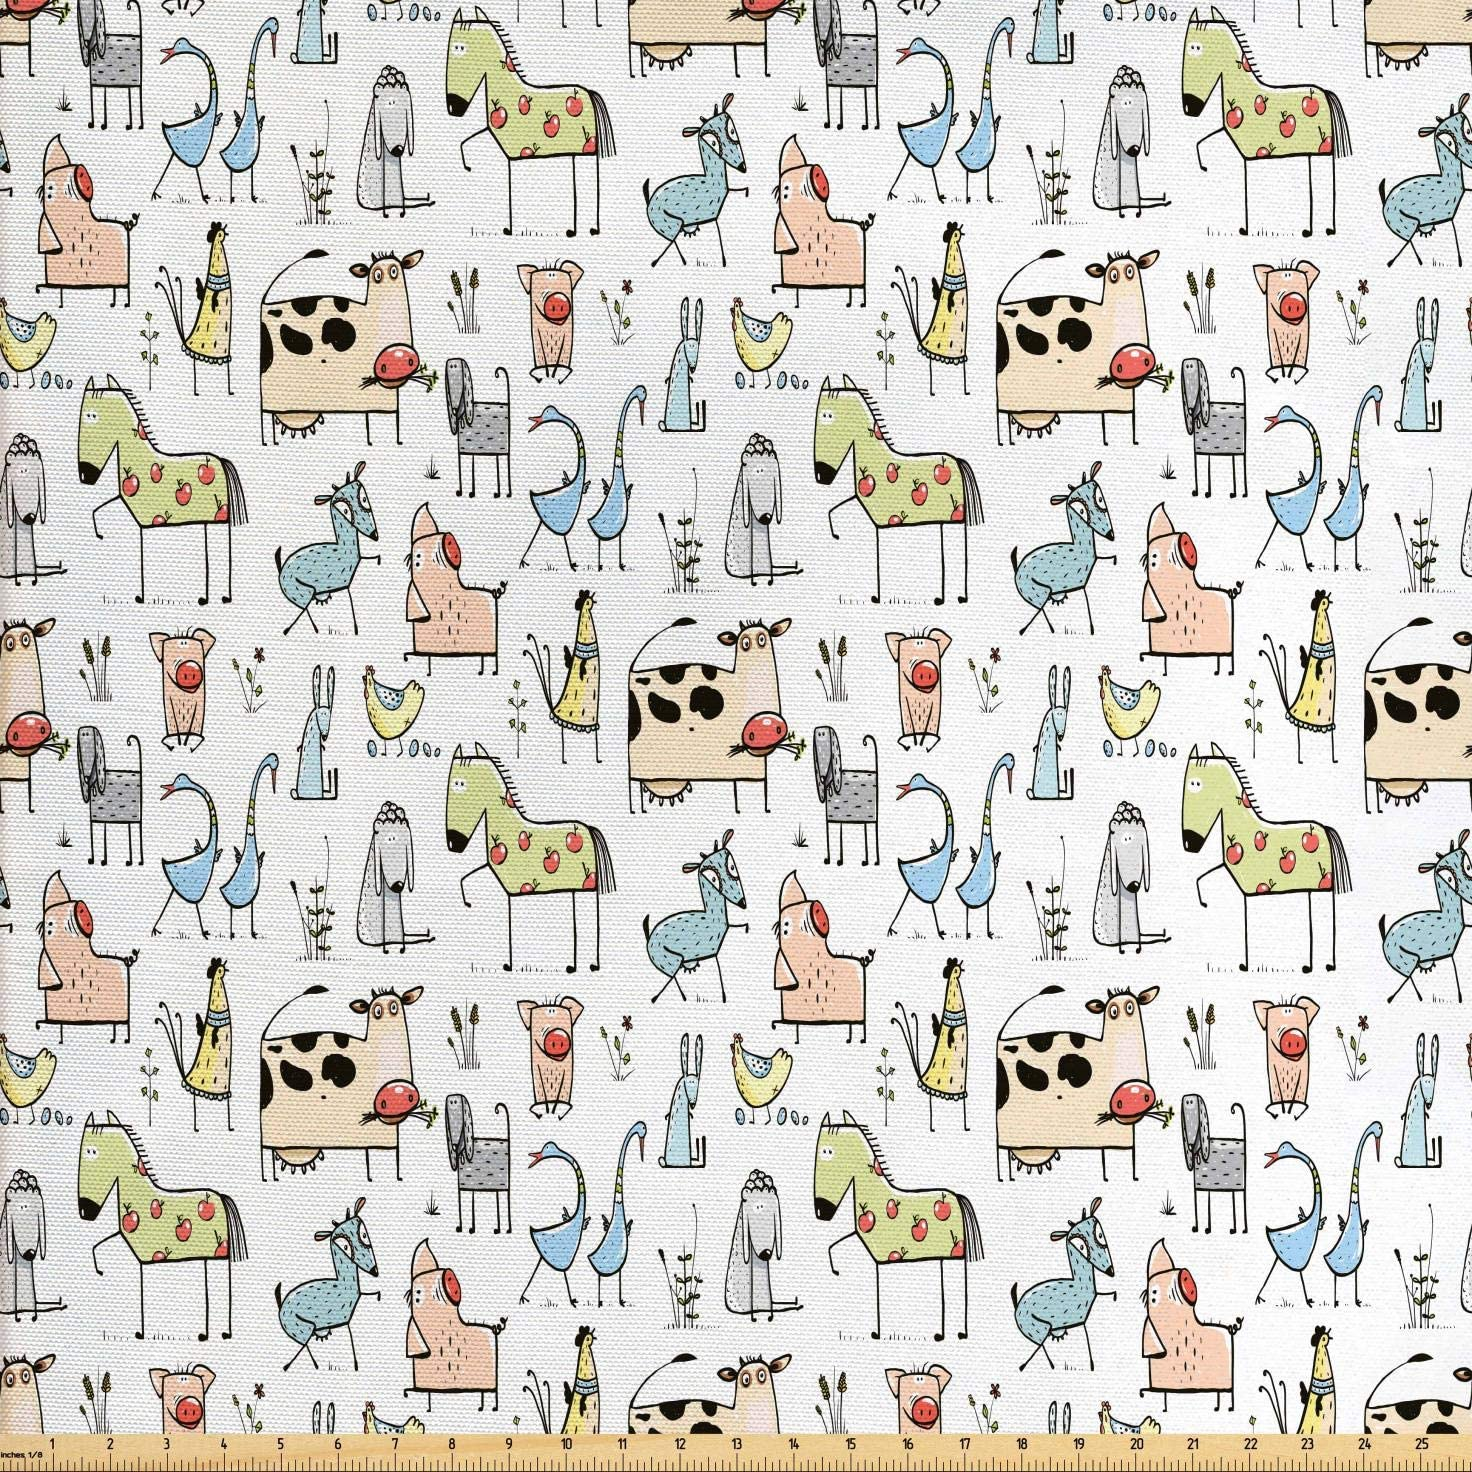 Lunarable Animal Fabric by The Yard, Cow Horse Pigs Chicken Sheep Farmhouse Mascots Kids Nursery Baby Cartoon Print, Decorative Fabric for Upholstery and Home Accents, 3 Yards, Black